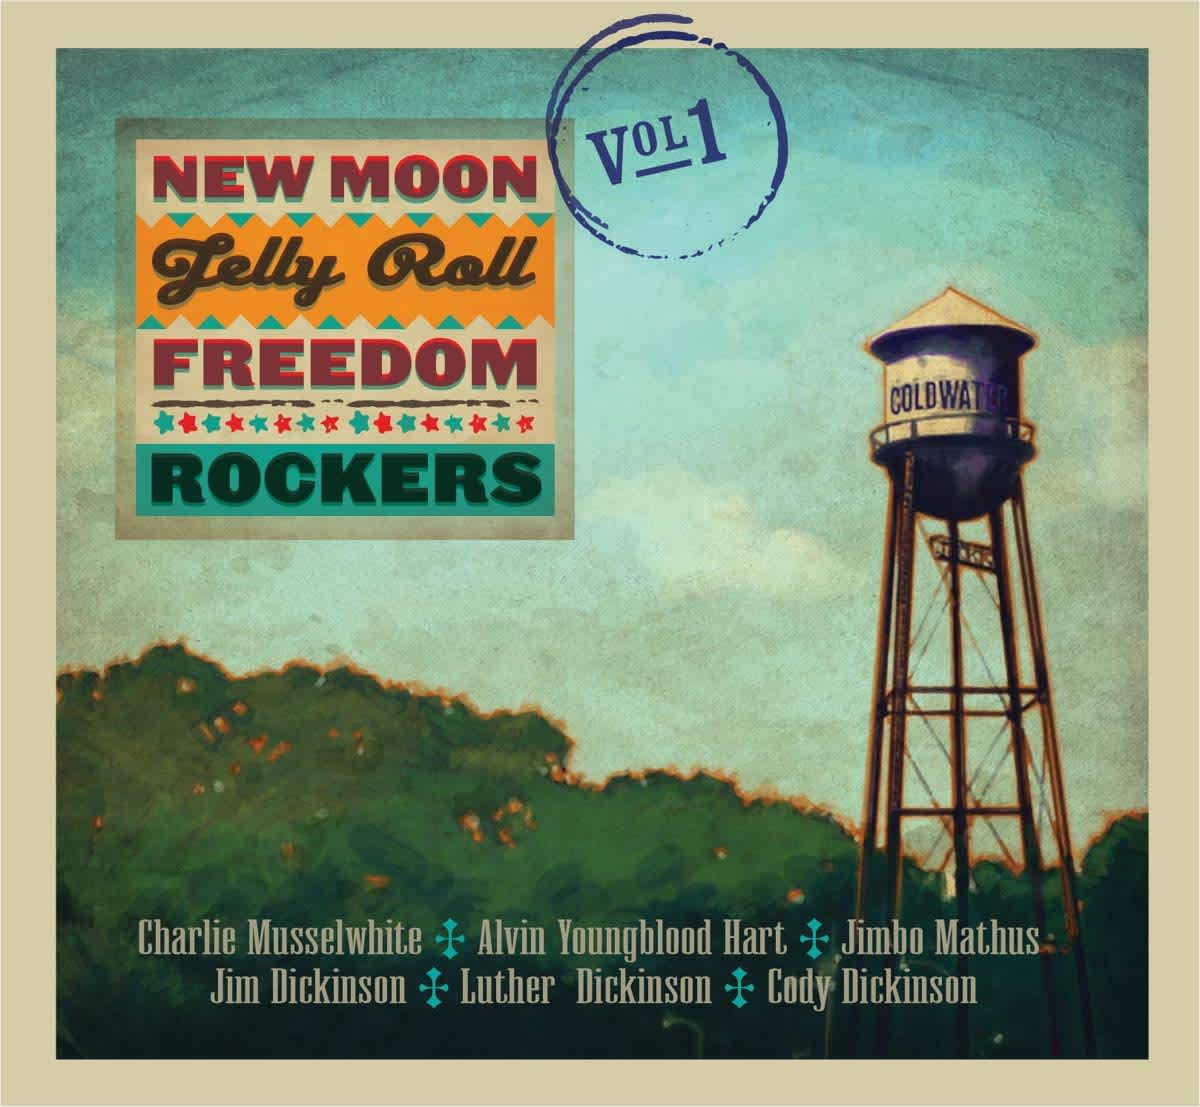 New Moon Jelly Roll Freedom Rockers 1